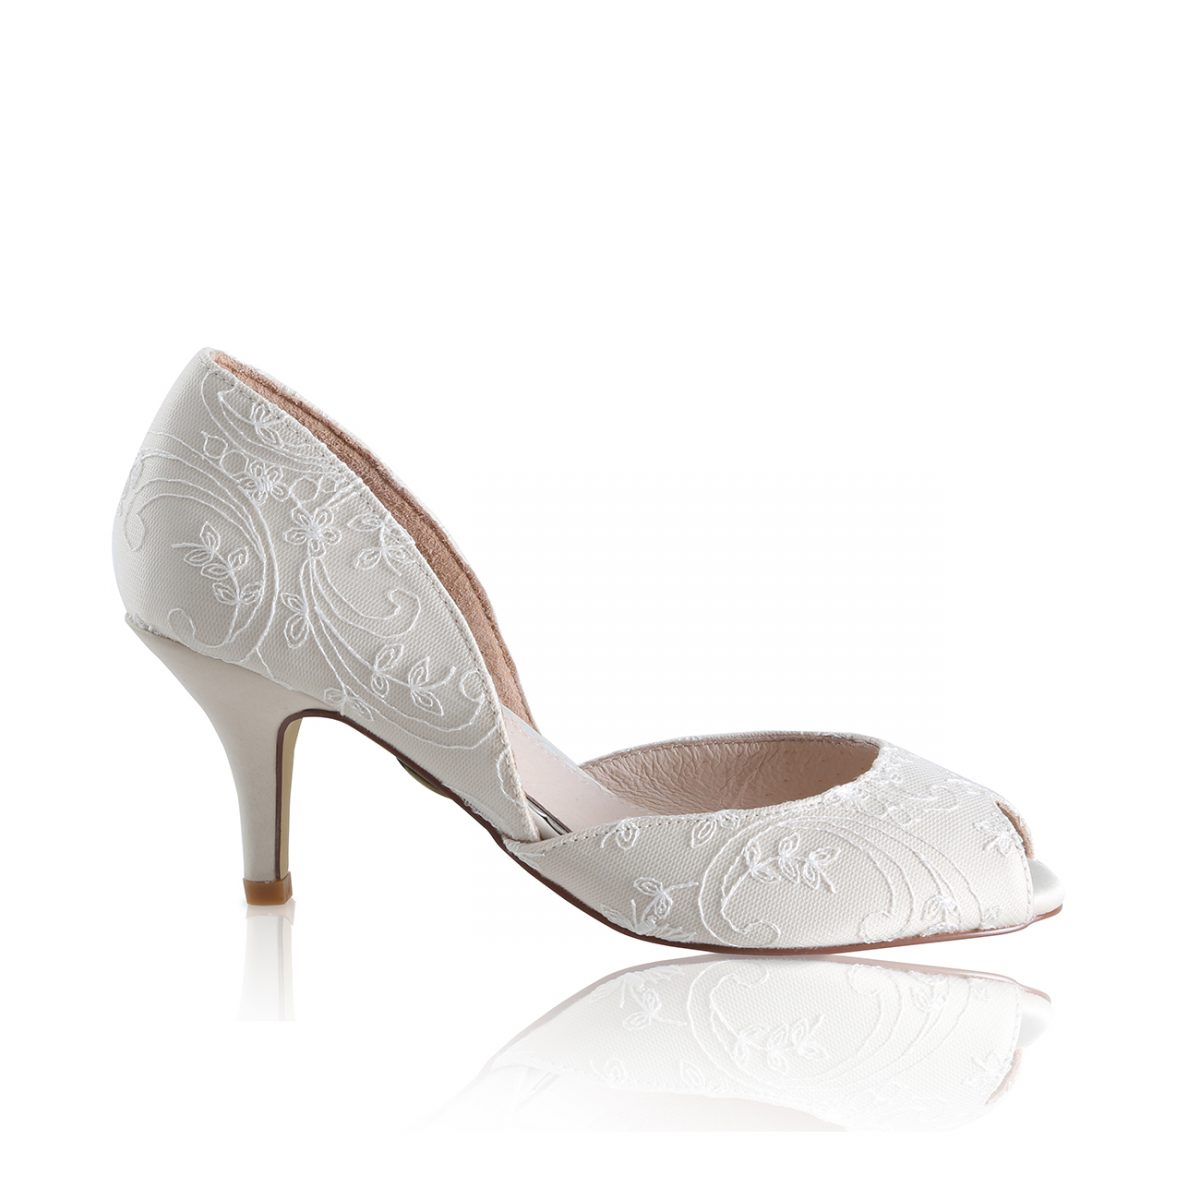 Perfect Bridal Corinne Shoes - Soft Gold